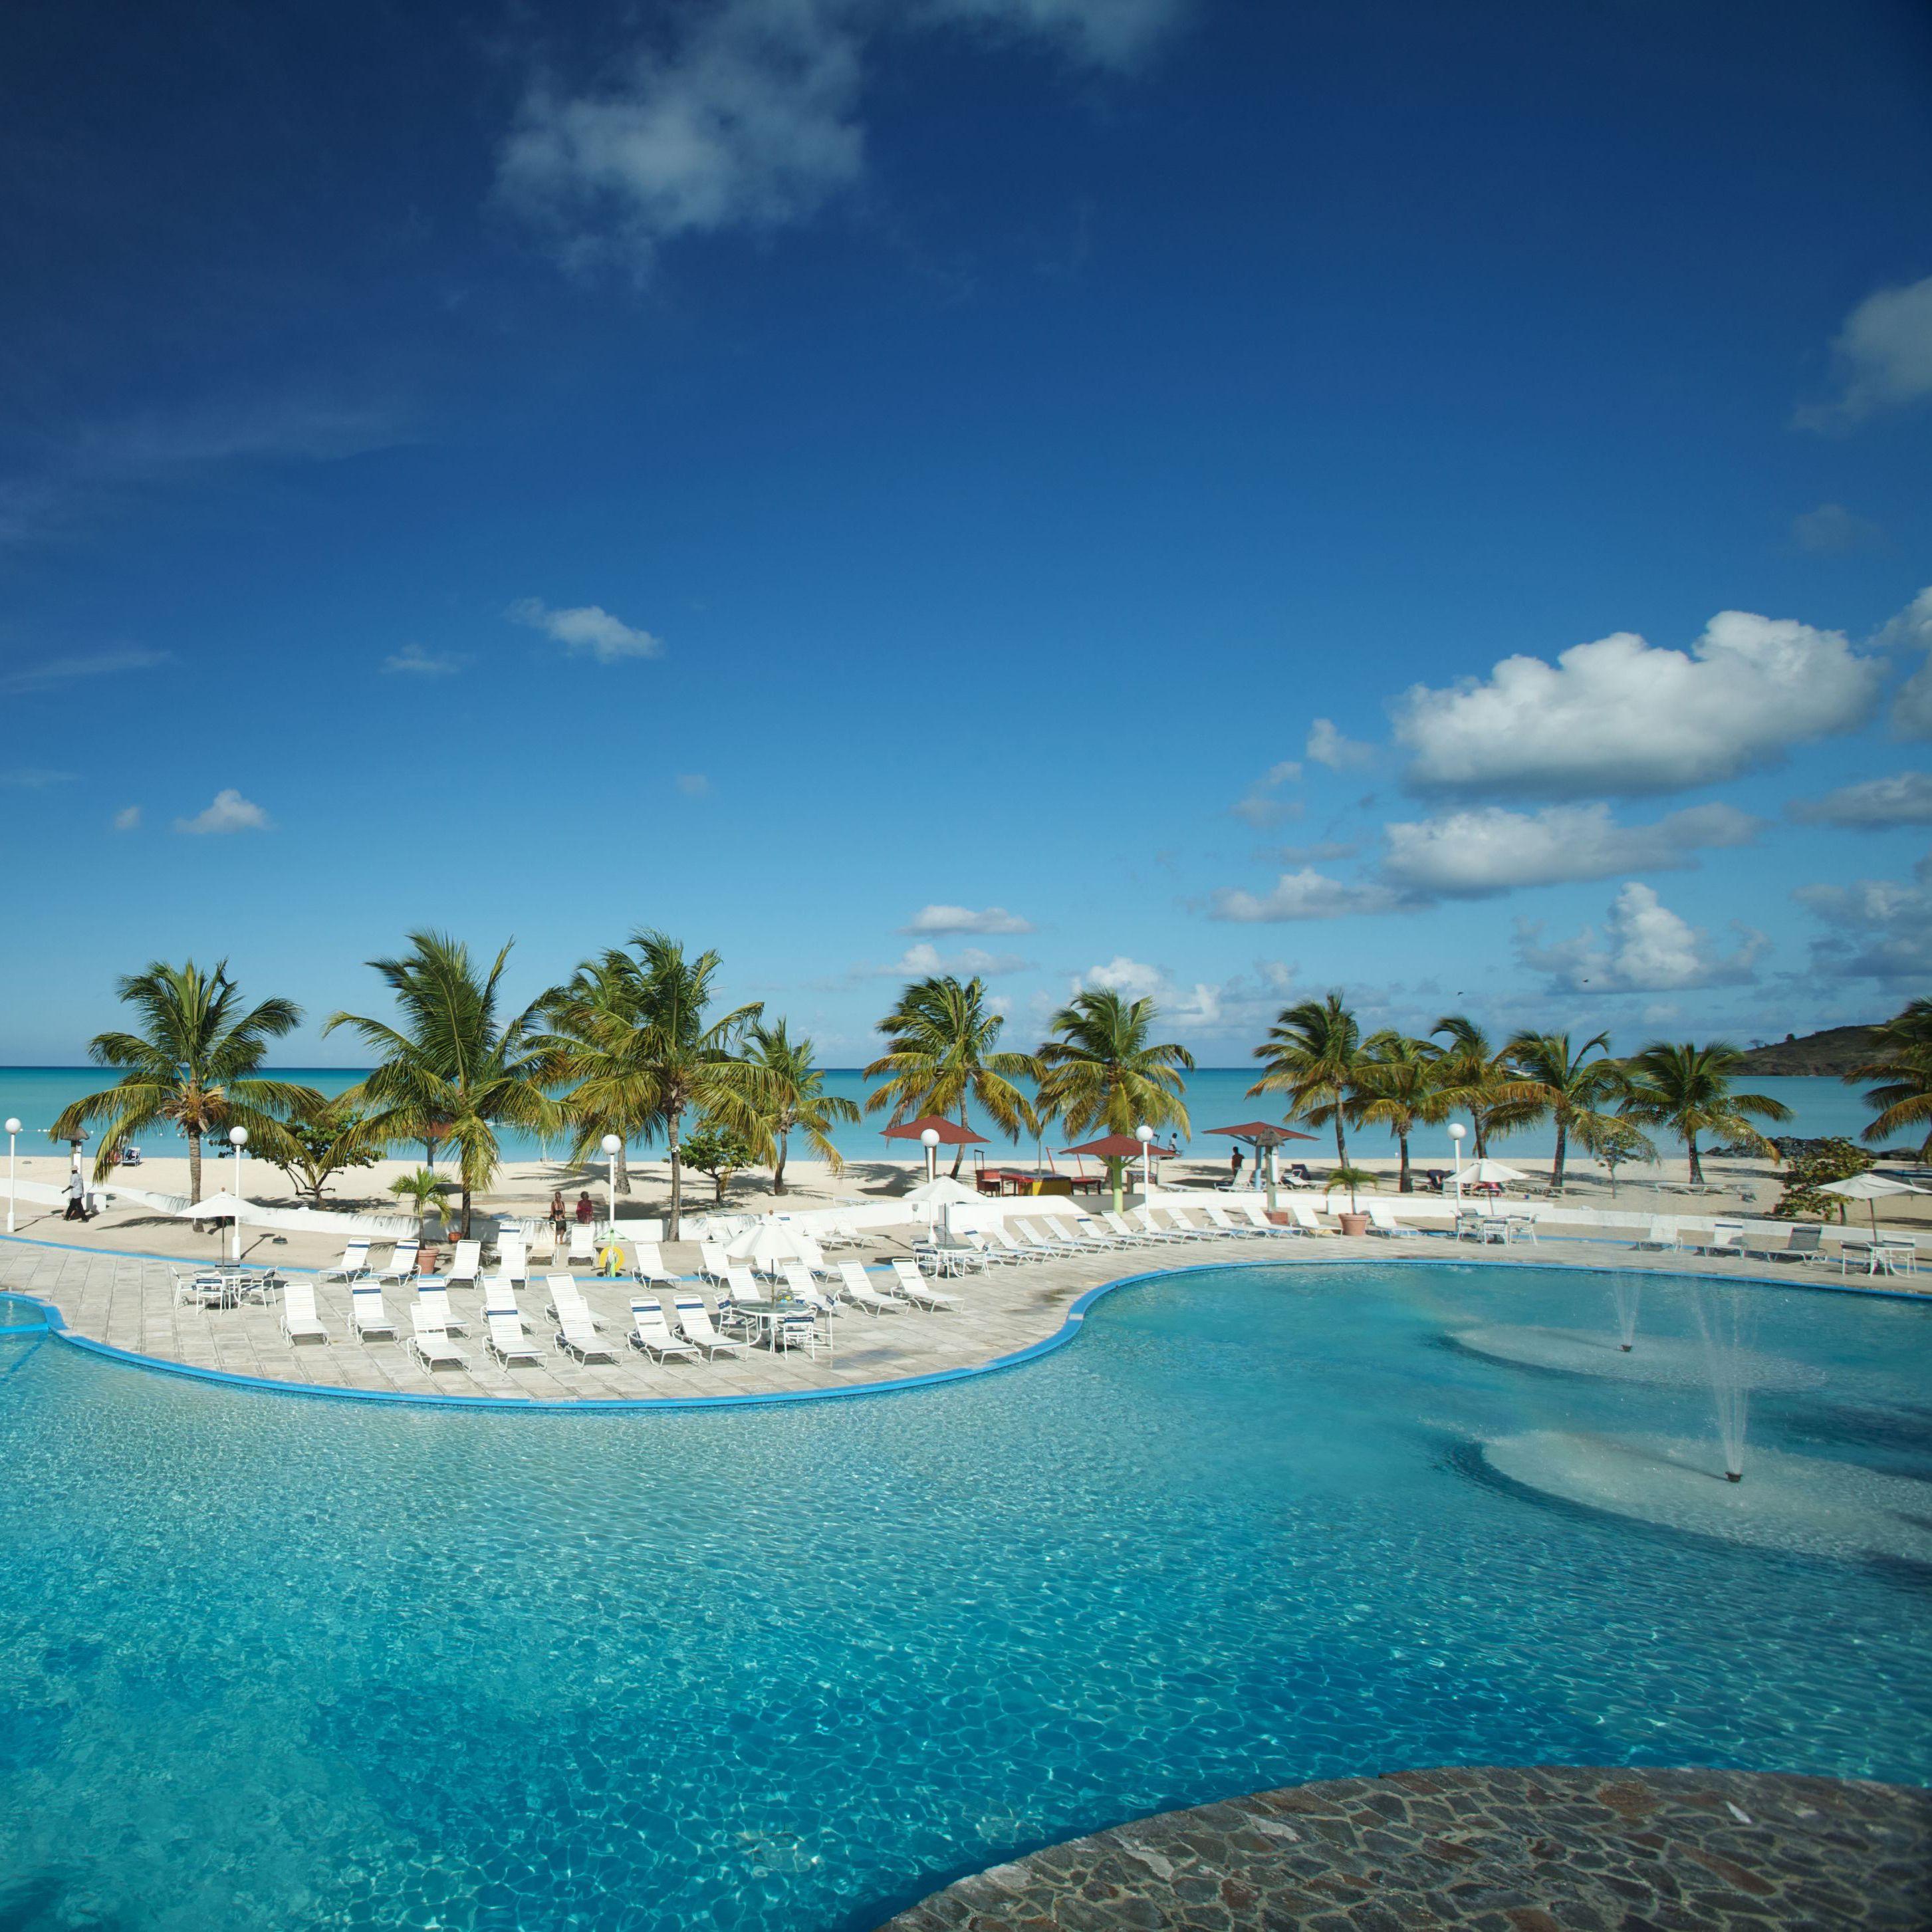 Beach Island: Looking For An Affordable Caribbean Christmas Getaway